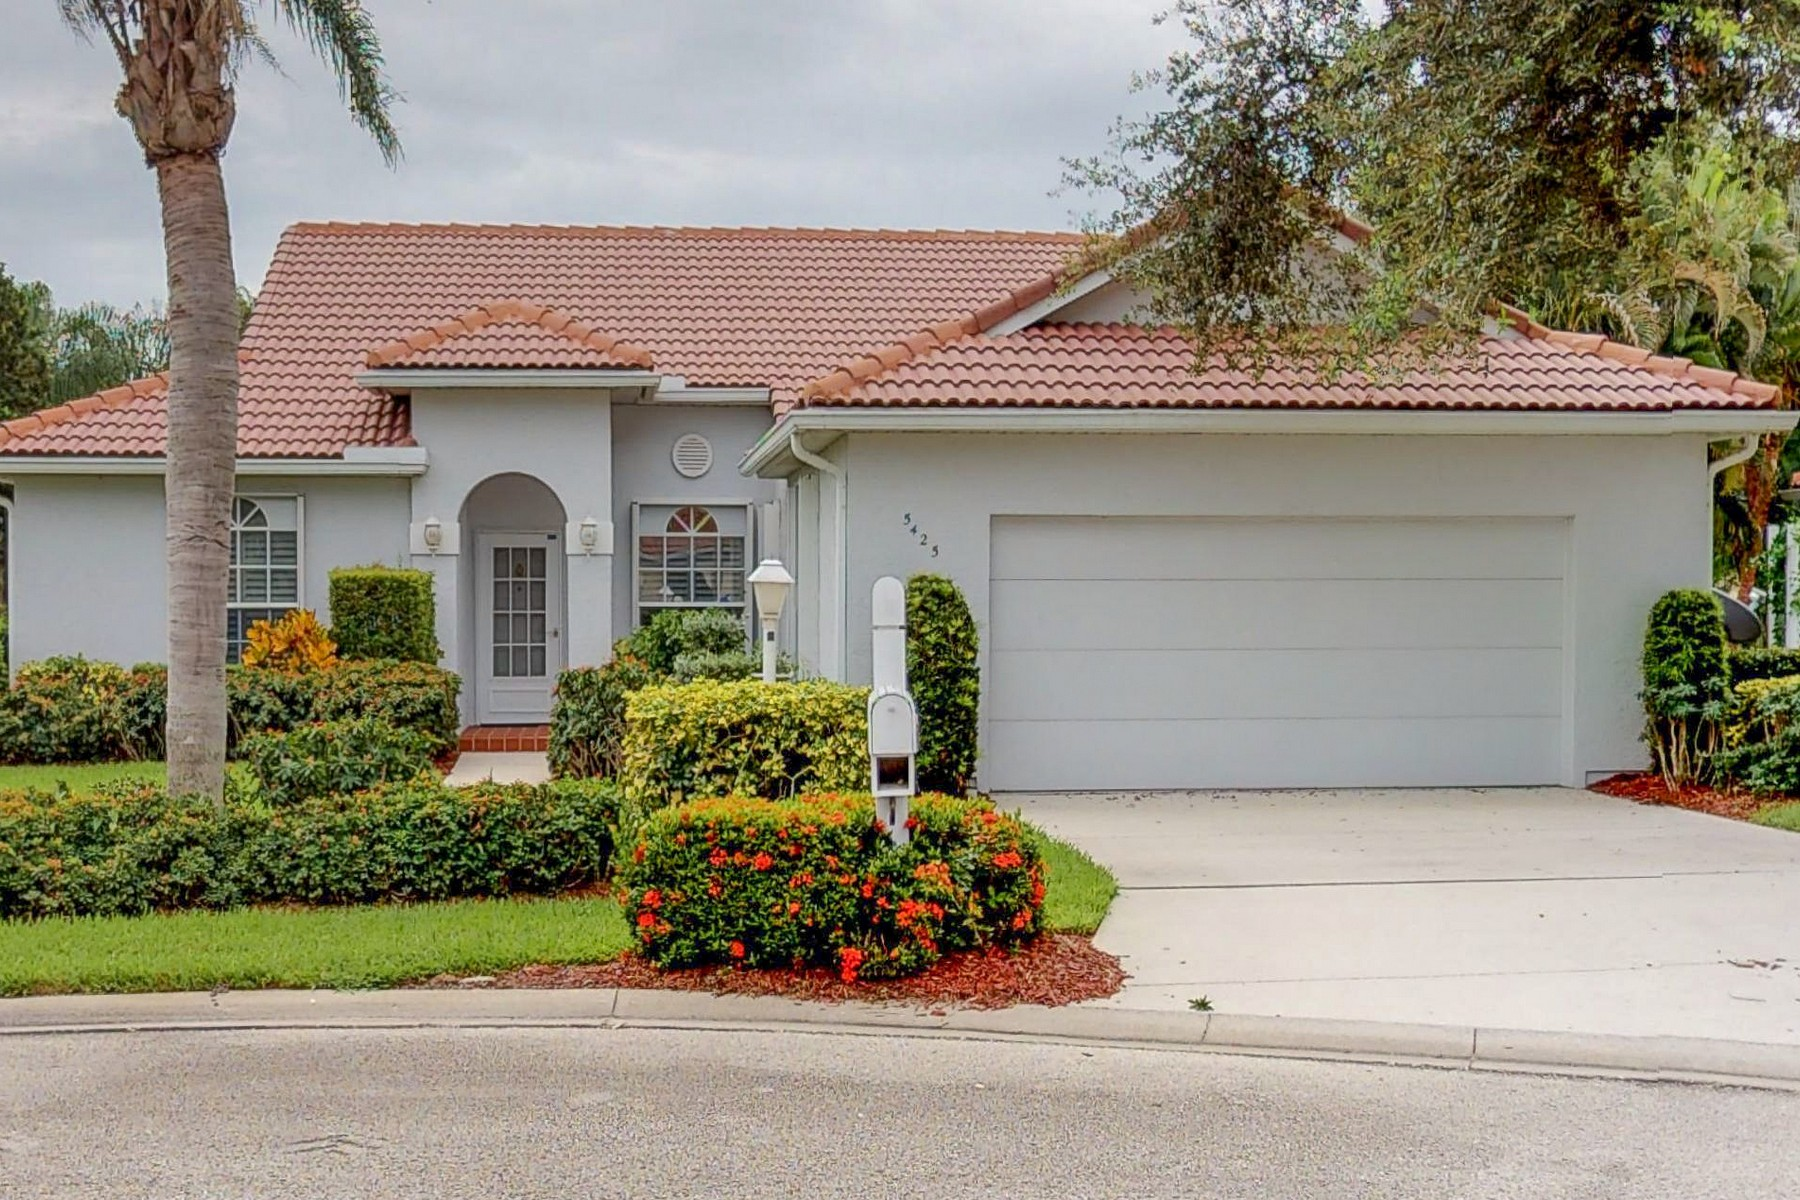 Single Family Home for Sale at Dreamy Location, Walk to Town, All Updated! 5425 25th Place Vero Beach, Florida 32966 United States